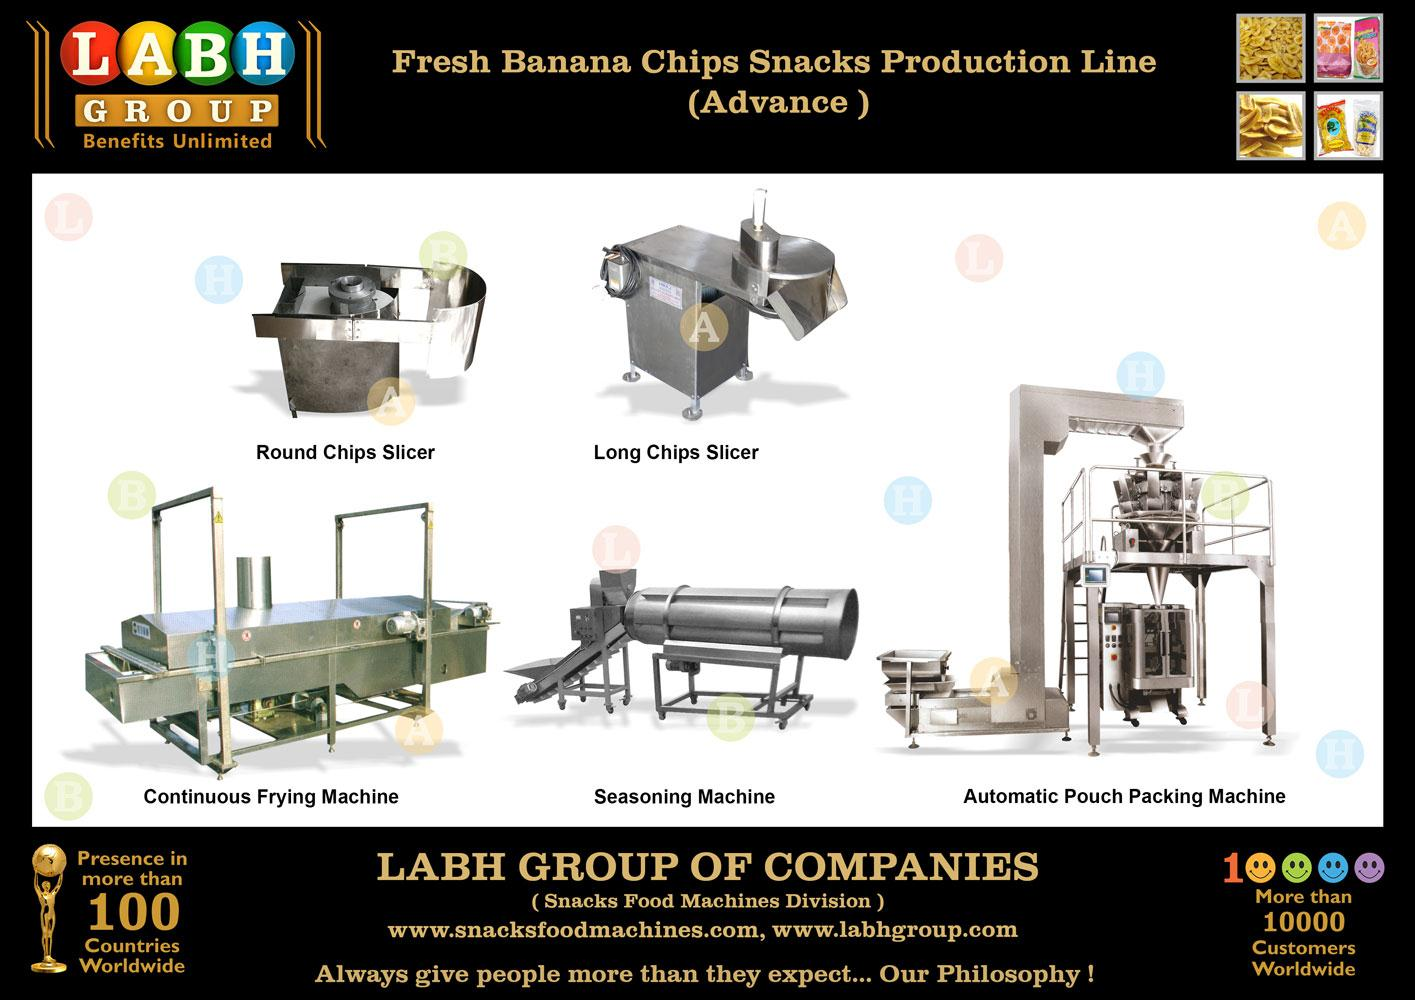 Online Banana Chips Processing Plants a902abb